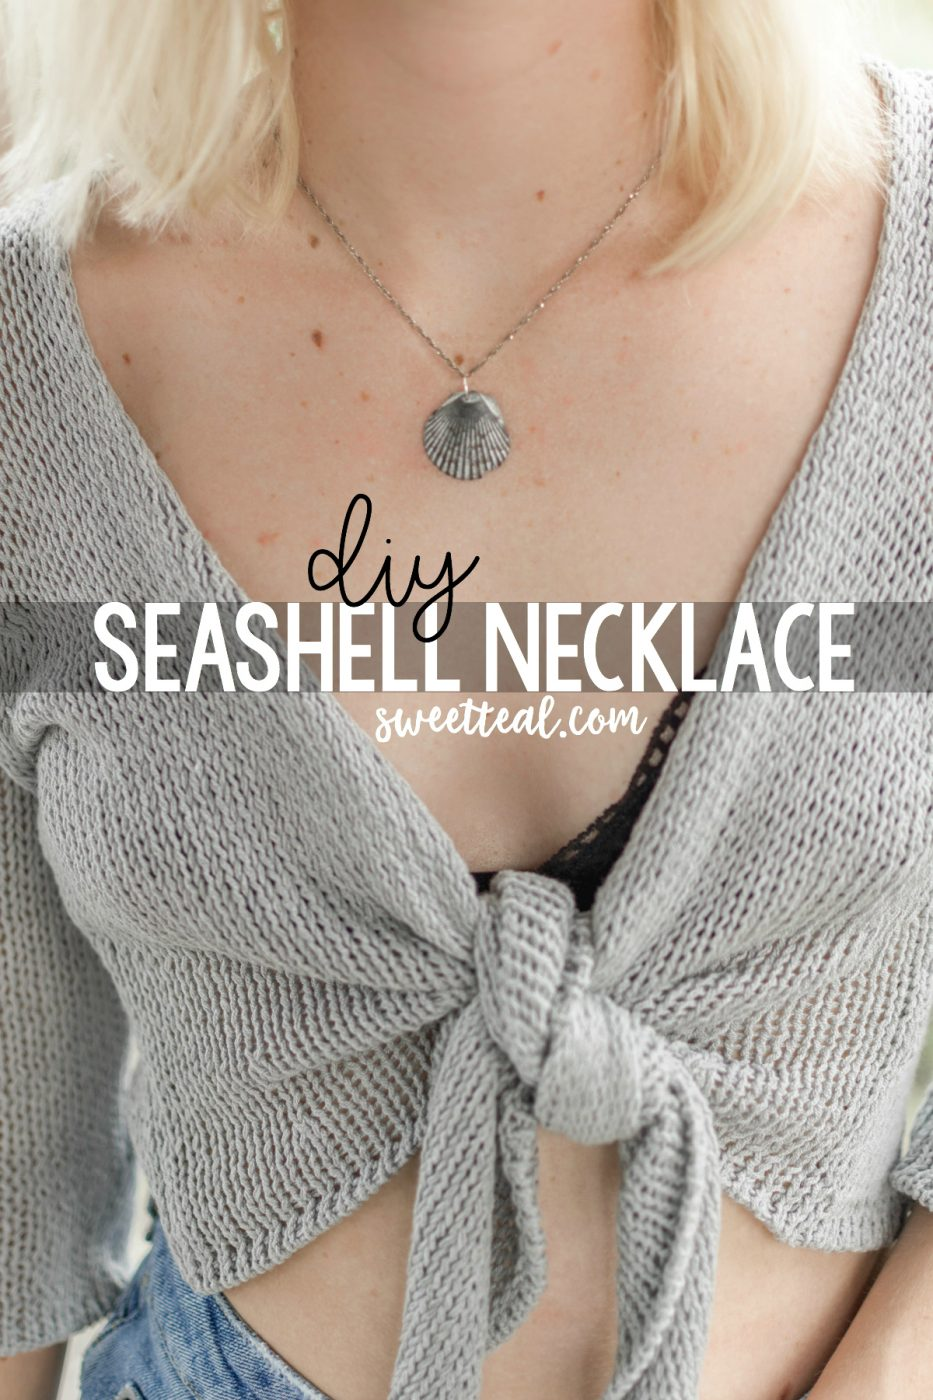 DIY Seashell Necklace Video Tutorial - Sweet Teal